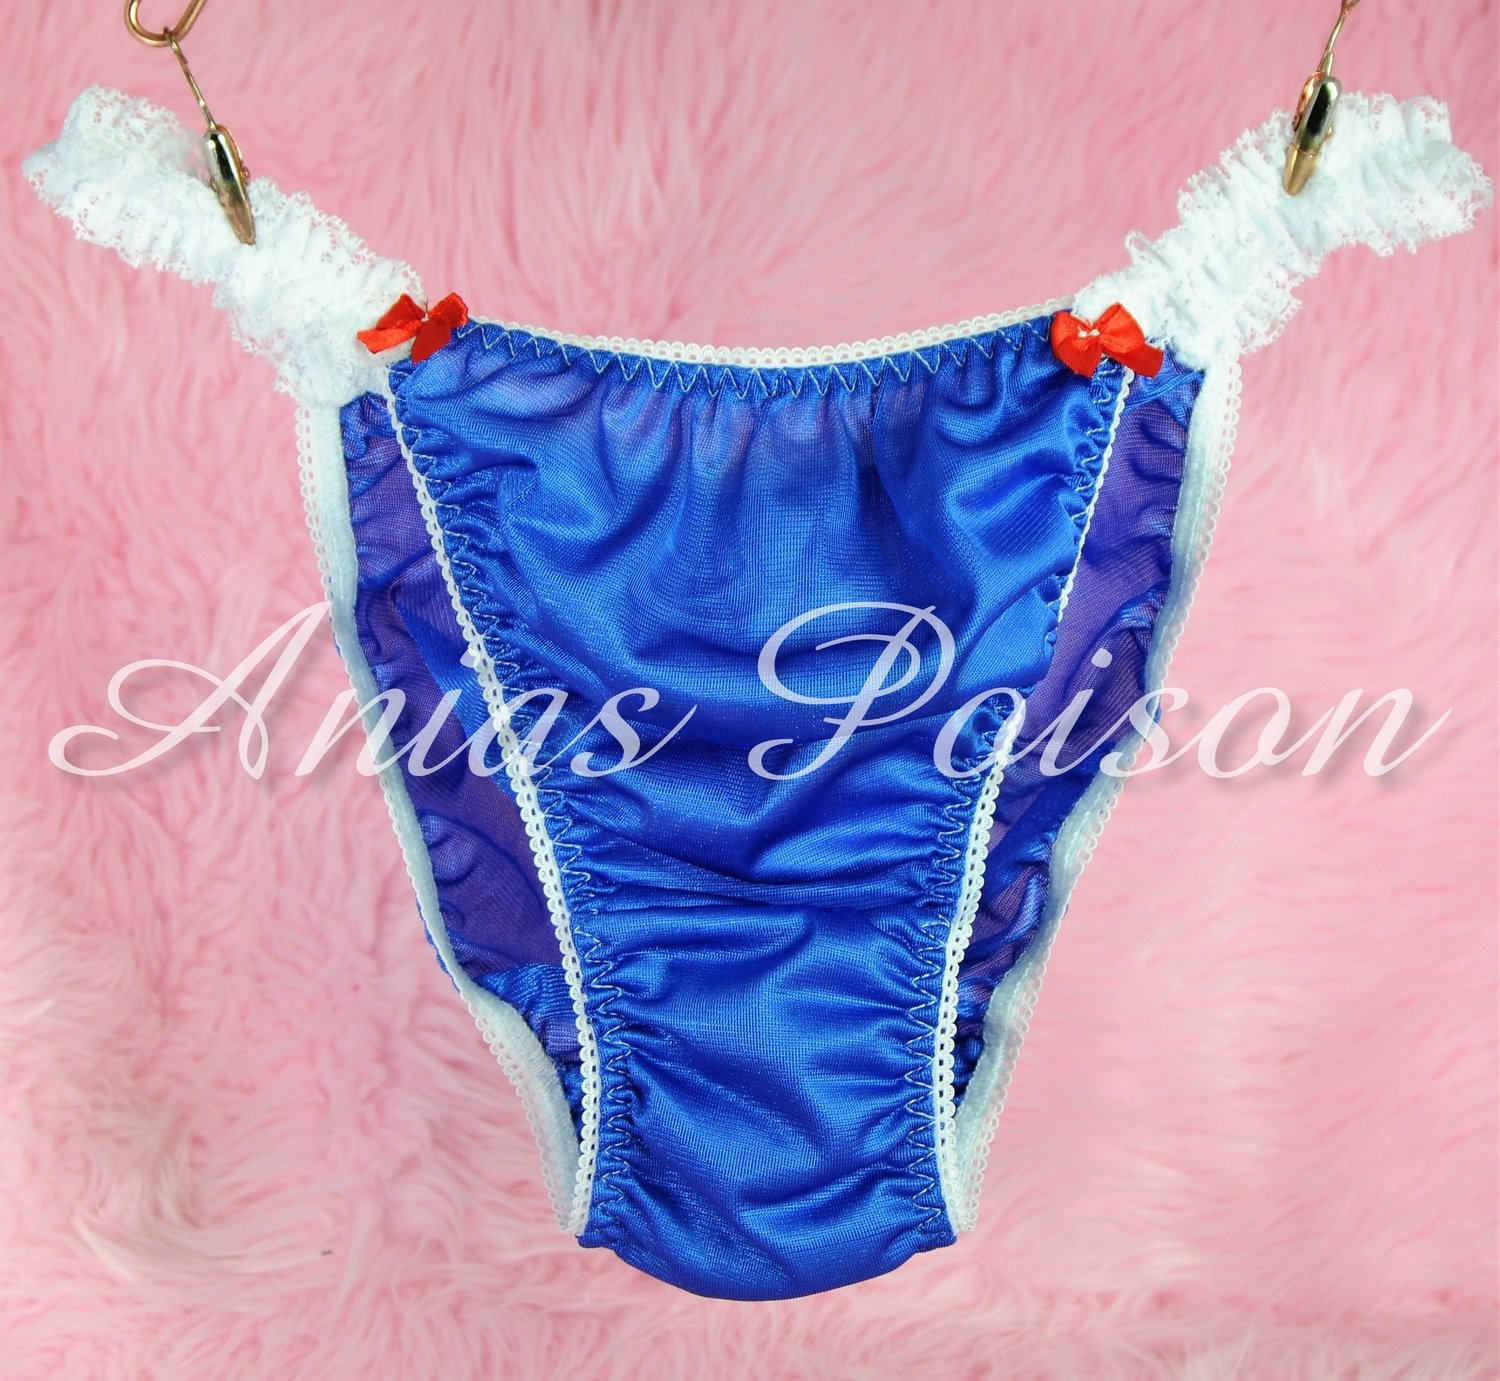 Anias Poison Sailor Moon Kawaii Anime Sailor Girly Sissy Nylon panties